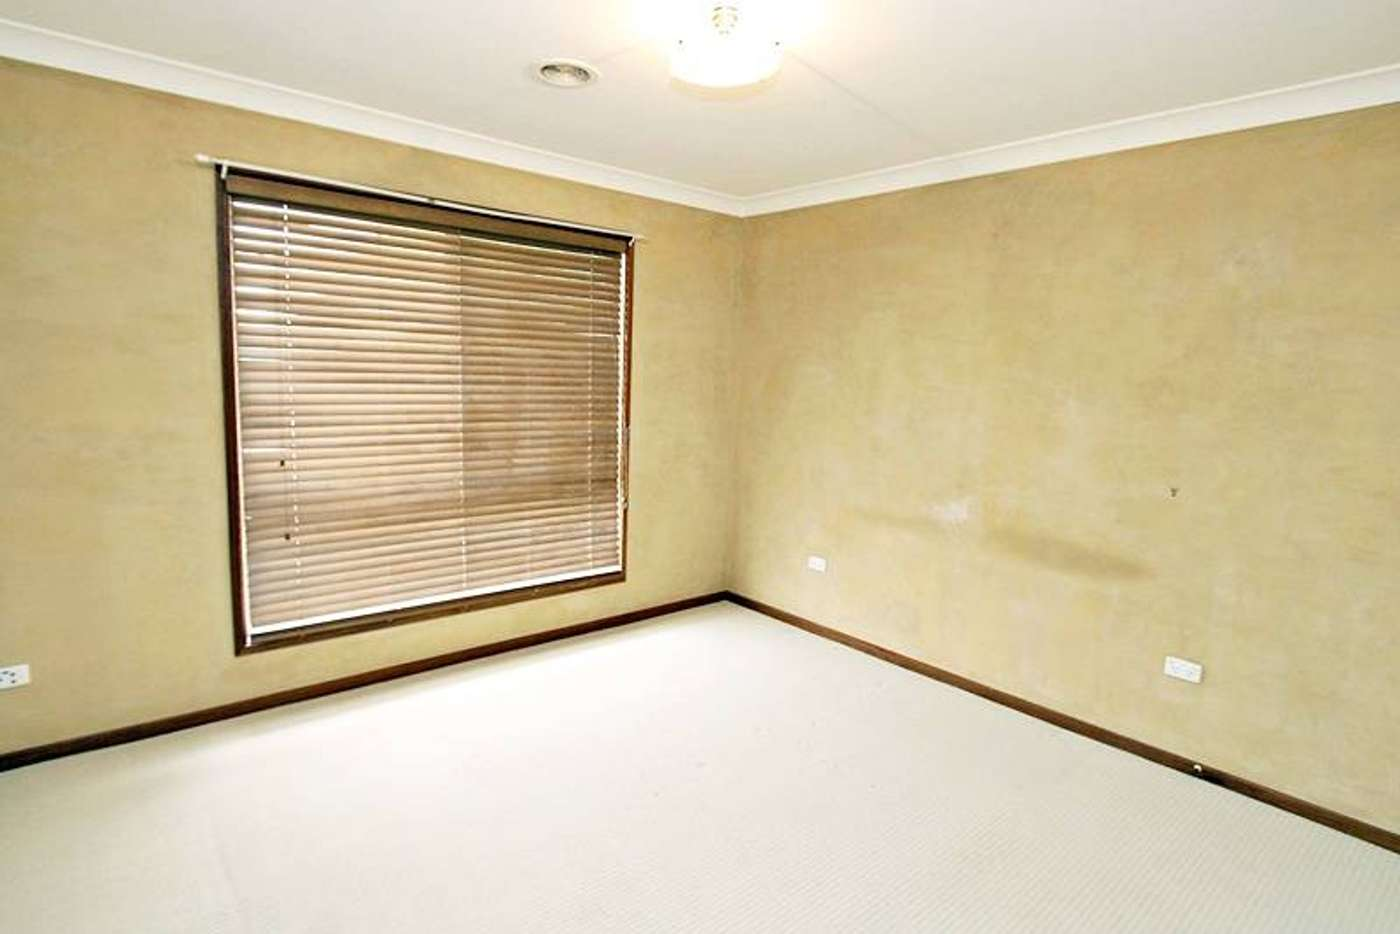 Seventh view of Homely house listing, 28 Langi Crescent, Glenfield Park NSW 2650